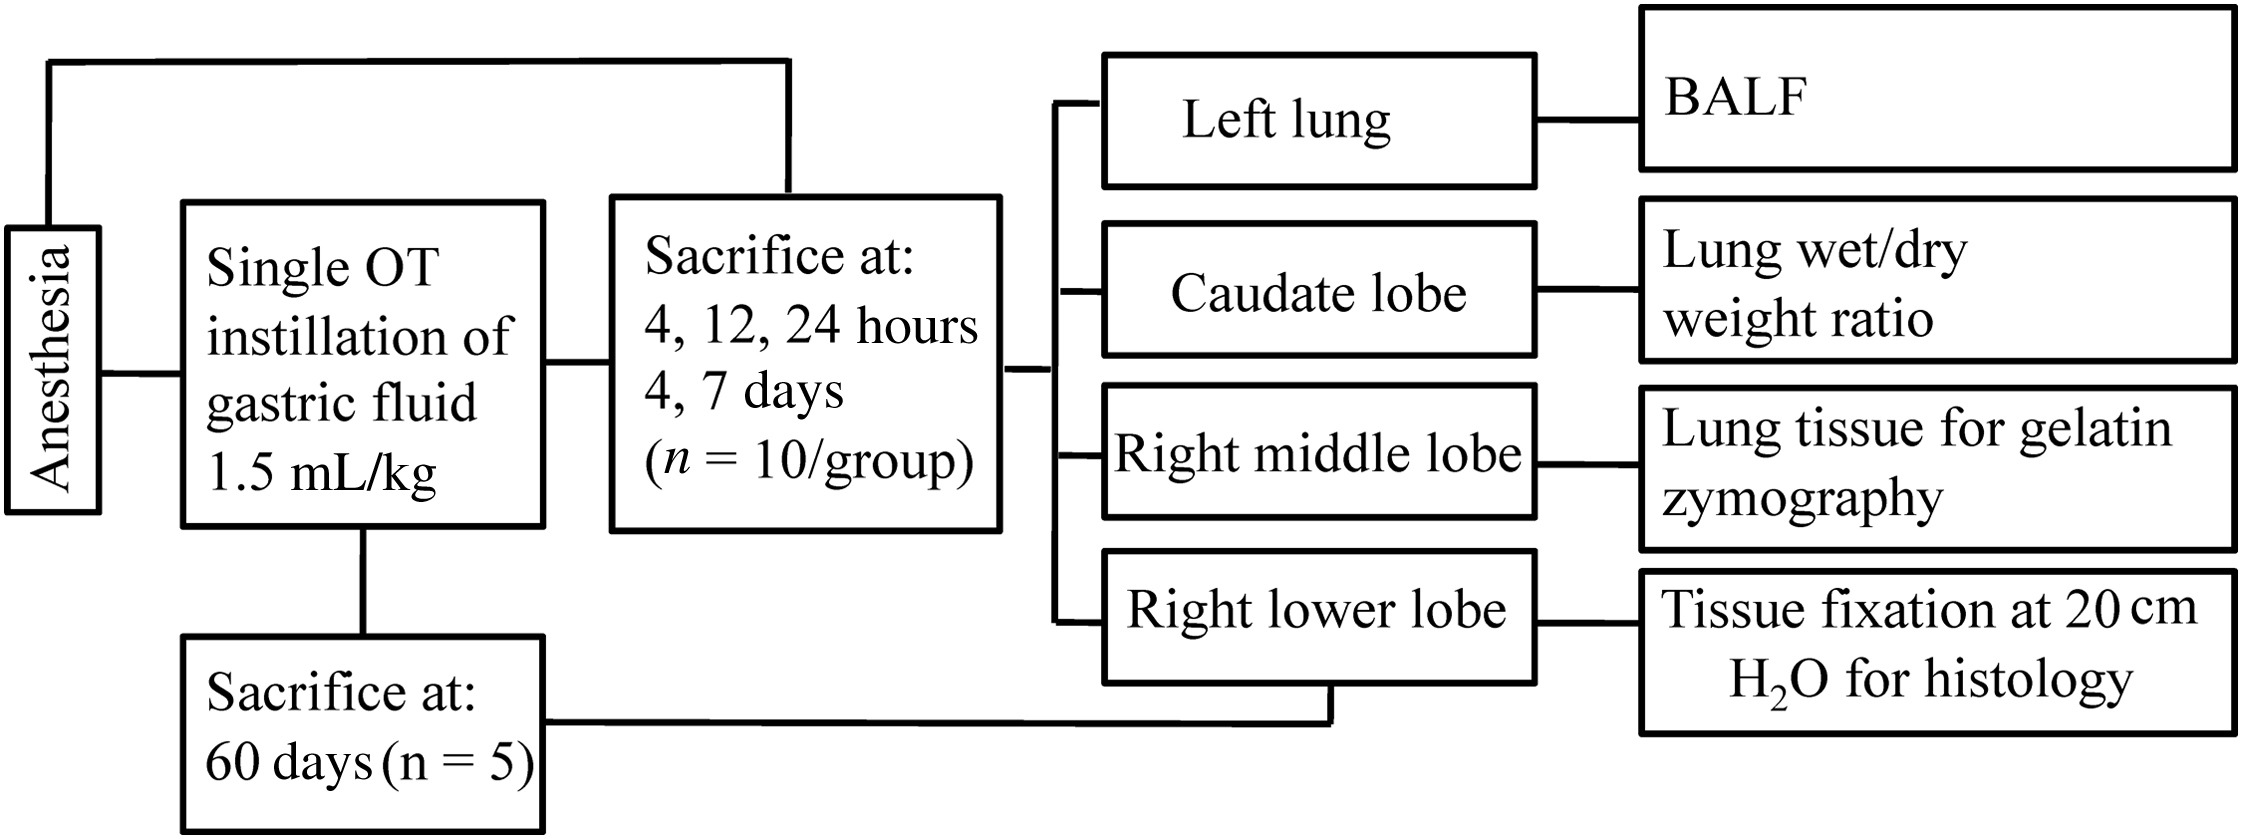 Resolution Of Lung Injury After A Single Event Of